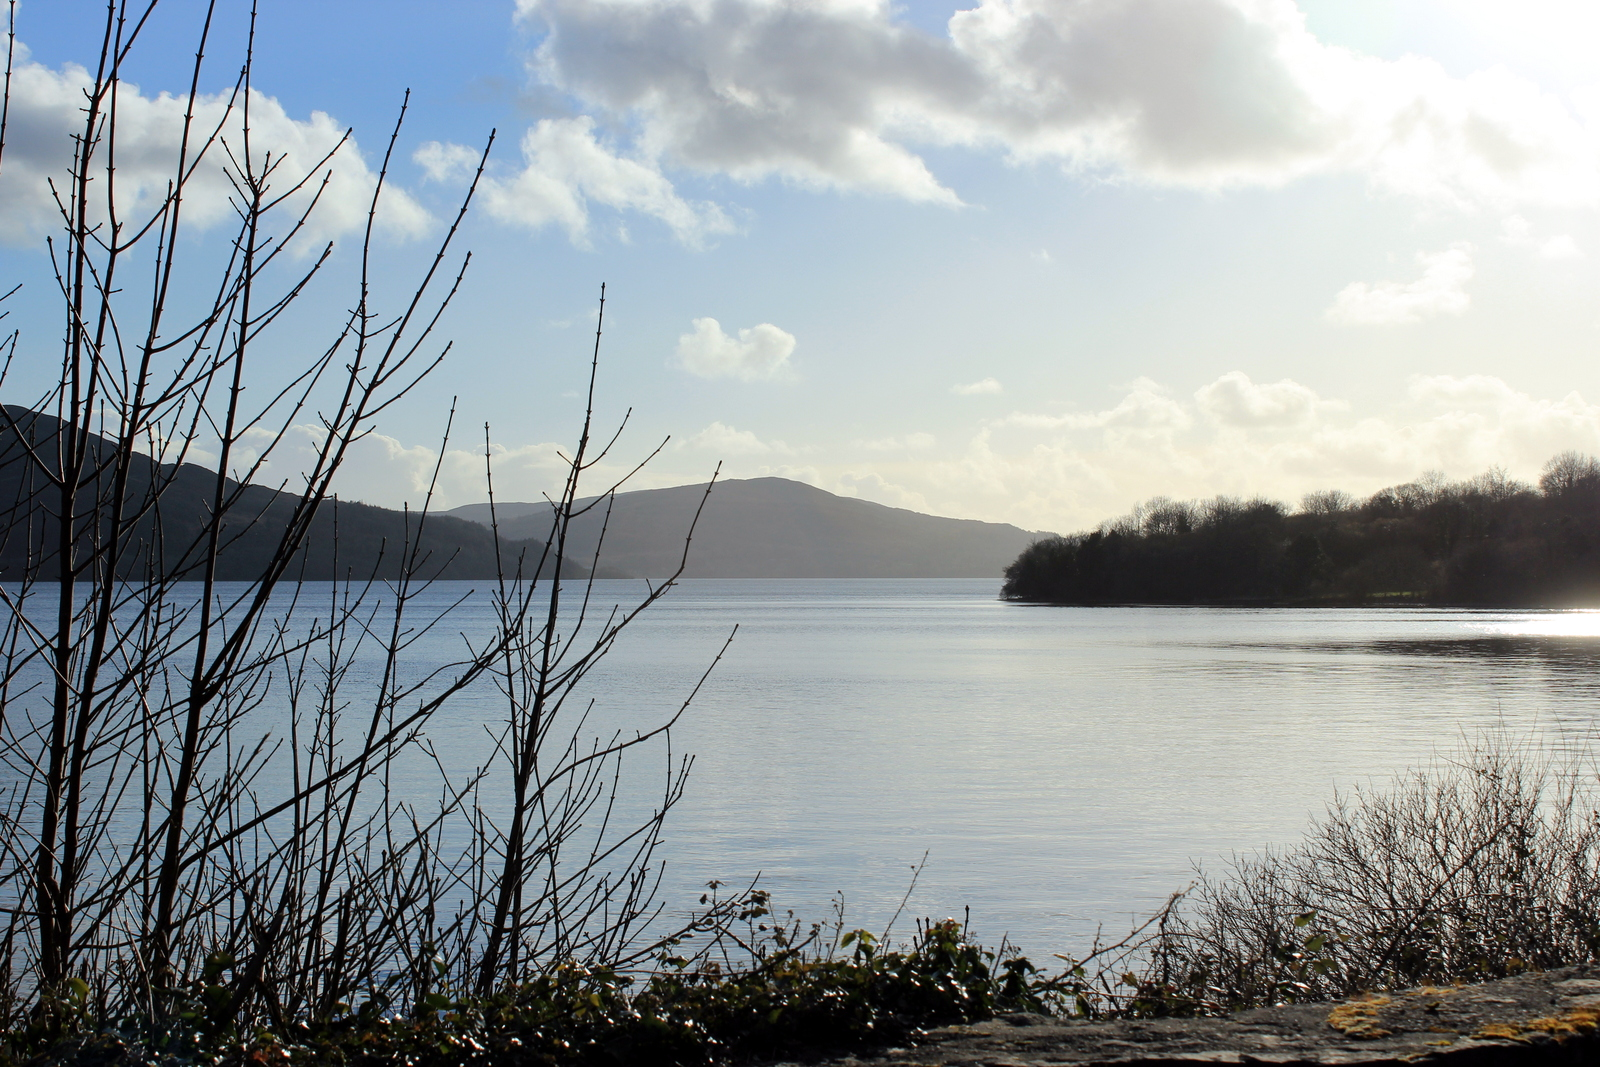 Lough Gill, Sligo